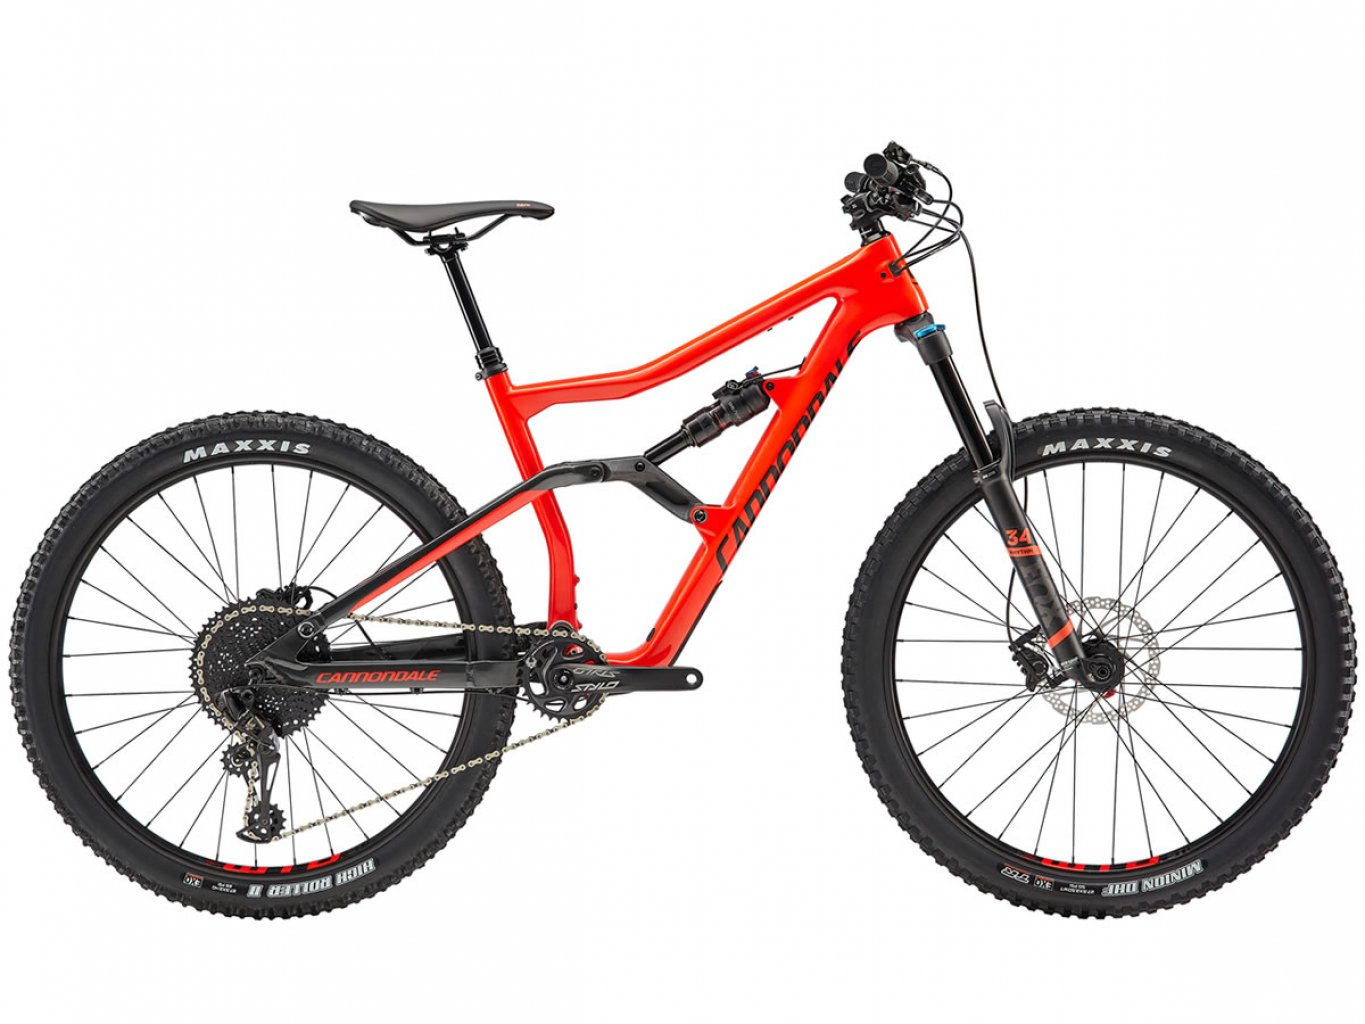 CANNONDALE Trigger 27.5 Crb/Al 3 ARD 2019